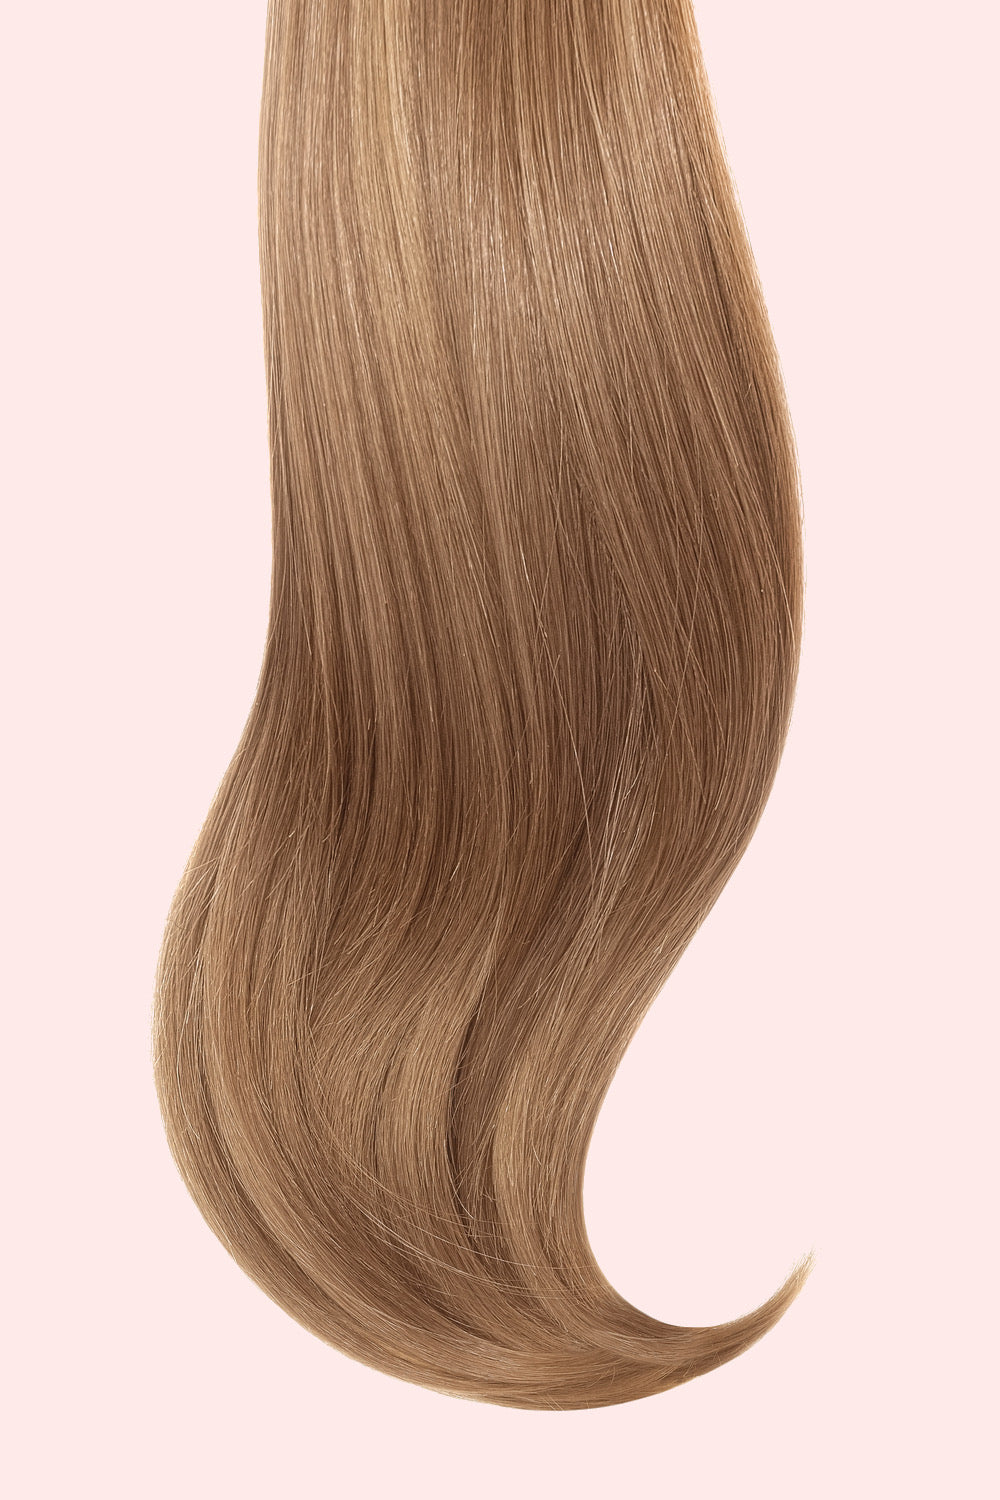 Seamless 200 grams 22 inch Clip-In Extensions #14 - GOSSIP HAIR